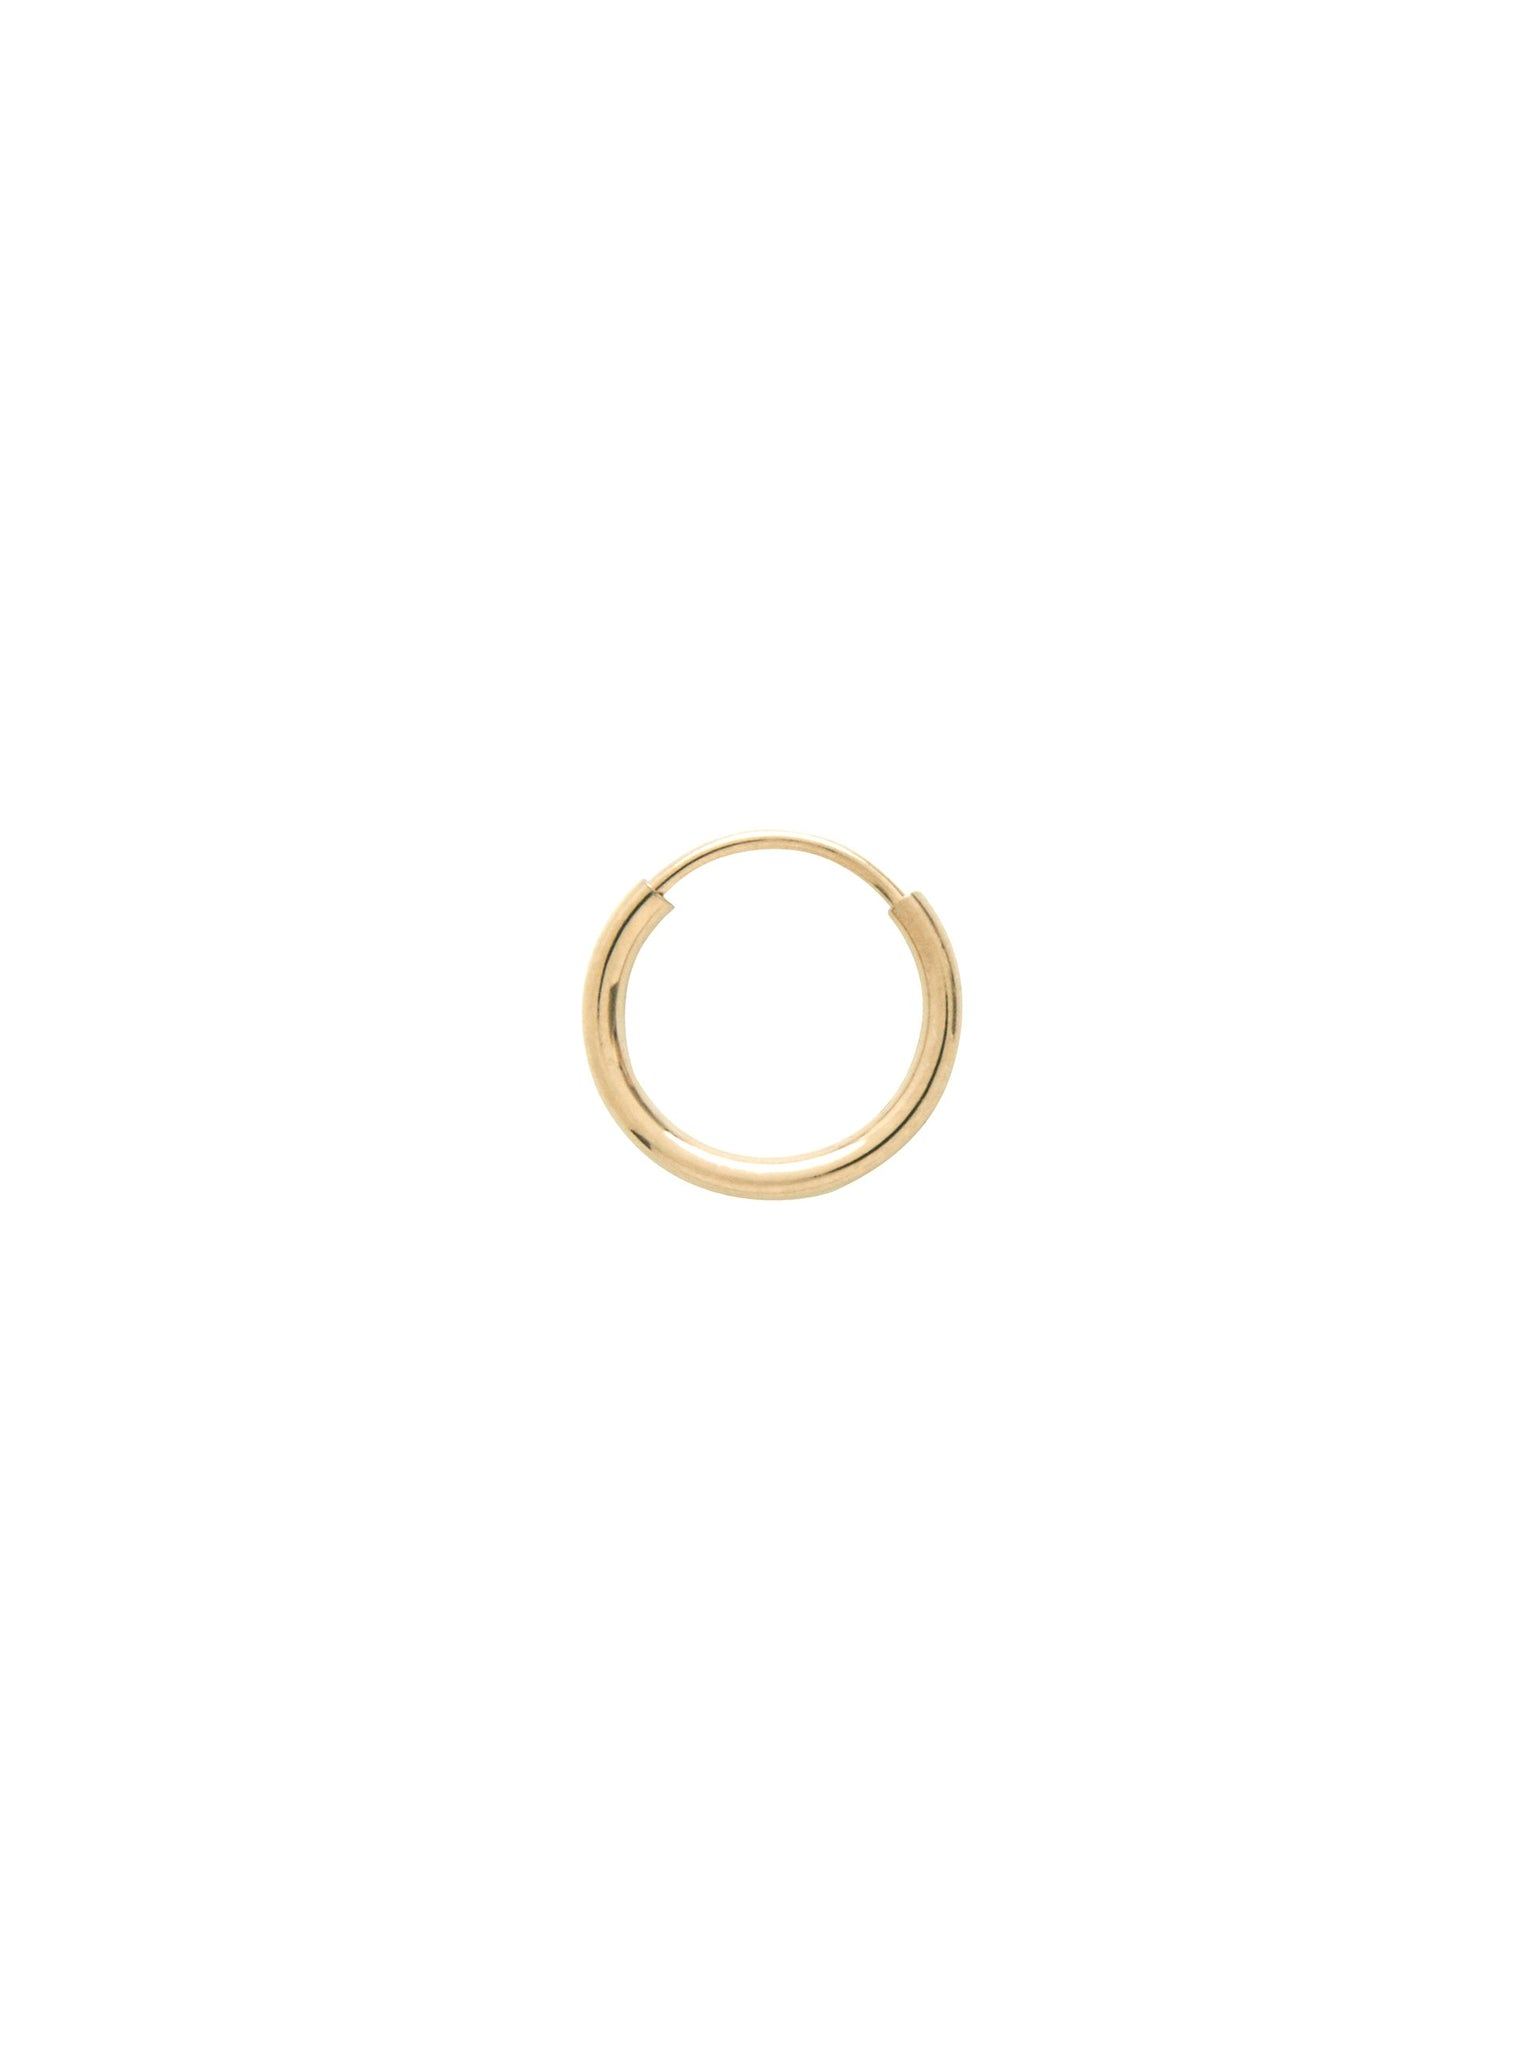 Essential minimal gold hoop earring that wears close to the lobe. This endless flexible tube design can be tricky and are better intended for extended wear.   14k yellow gold 10mm diameter  1mm thickness Sold as a single